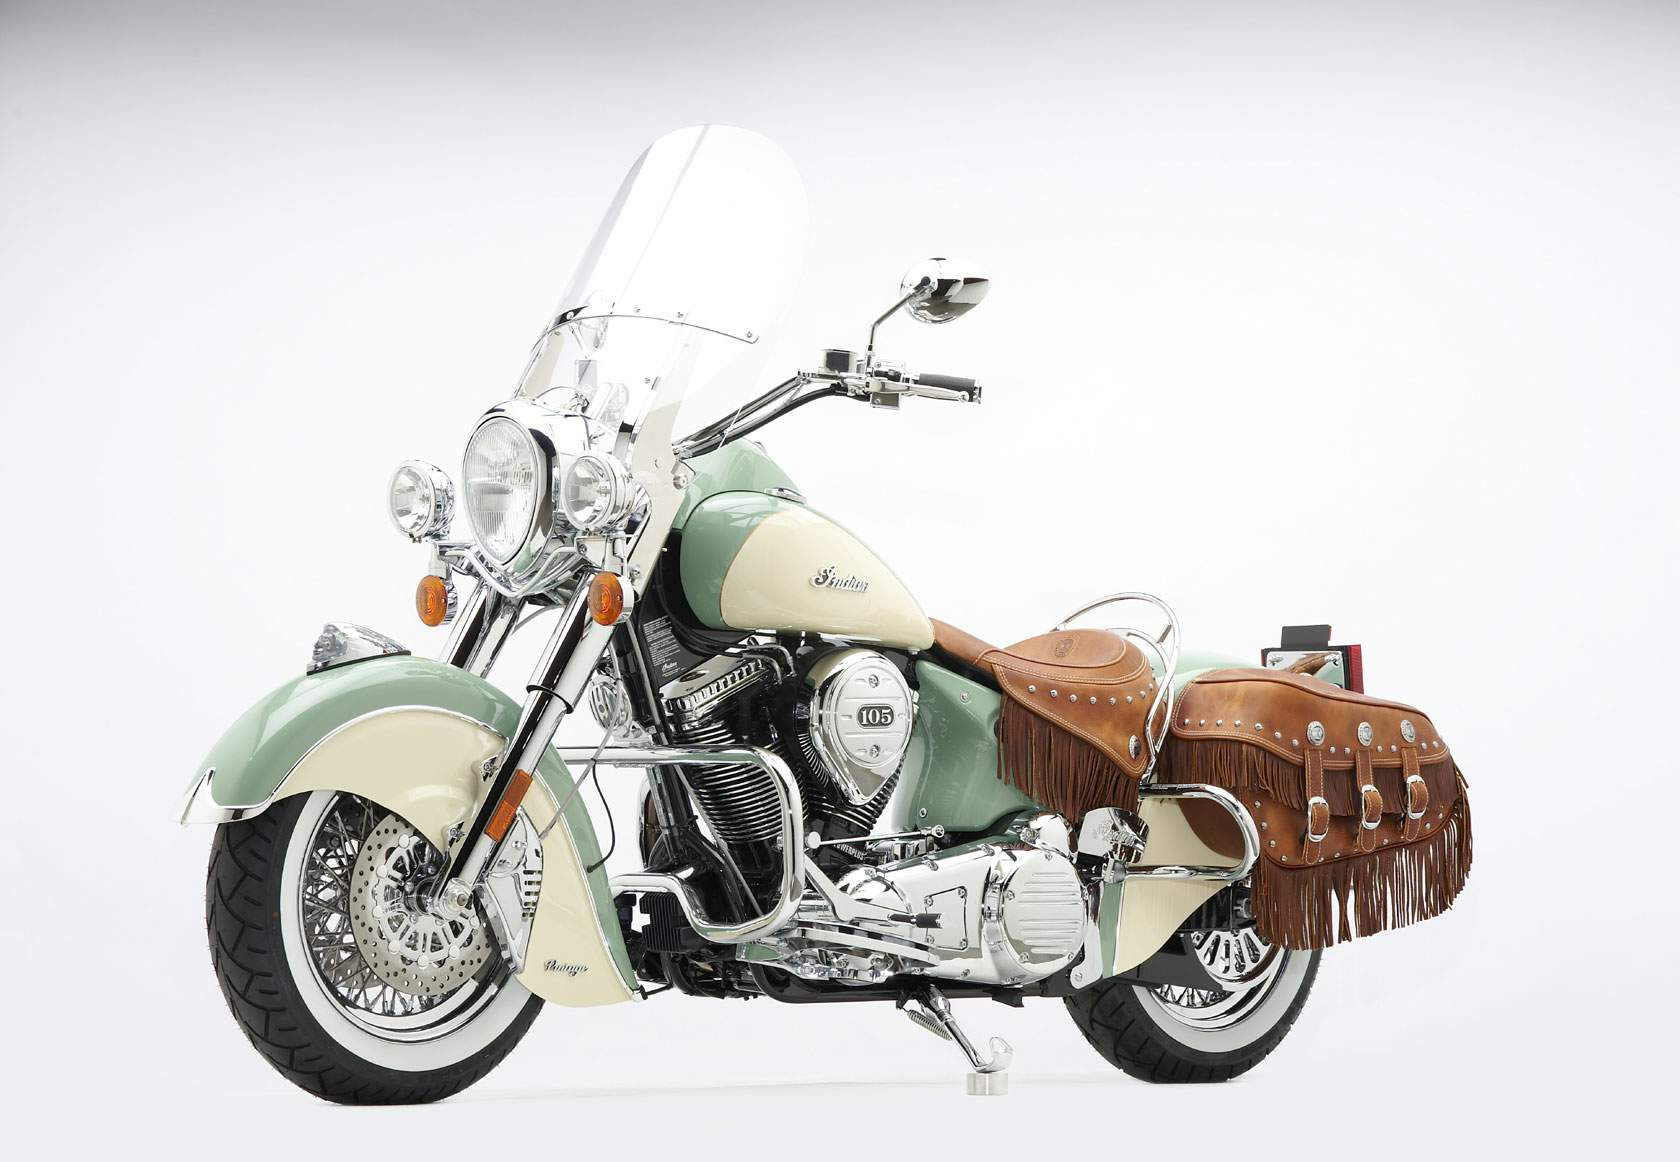 Top Motorcycle Wallpapers 2009 Indian Chief Vintage Wallpaper 1680x1162